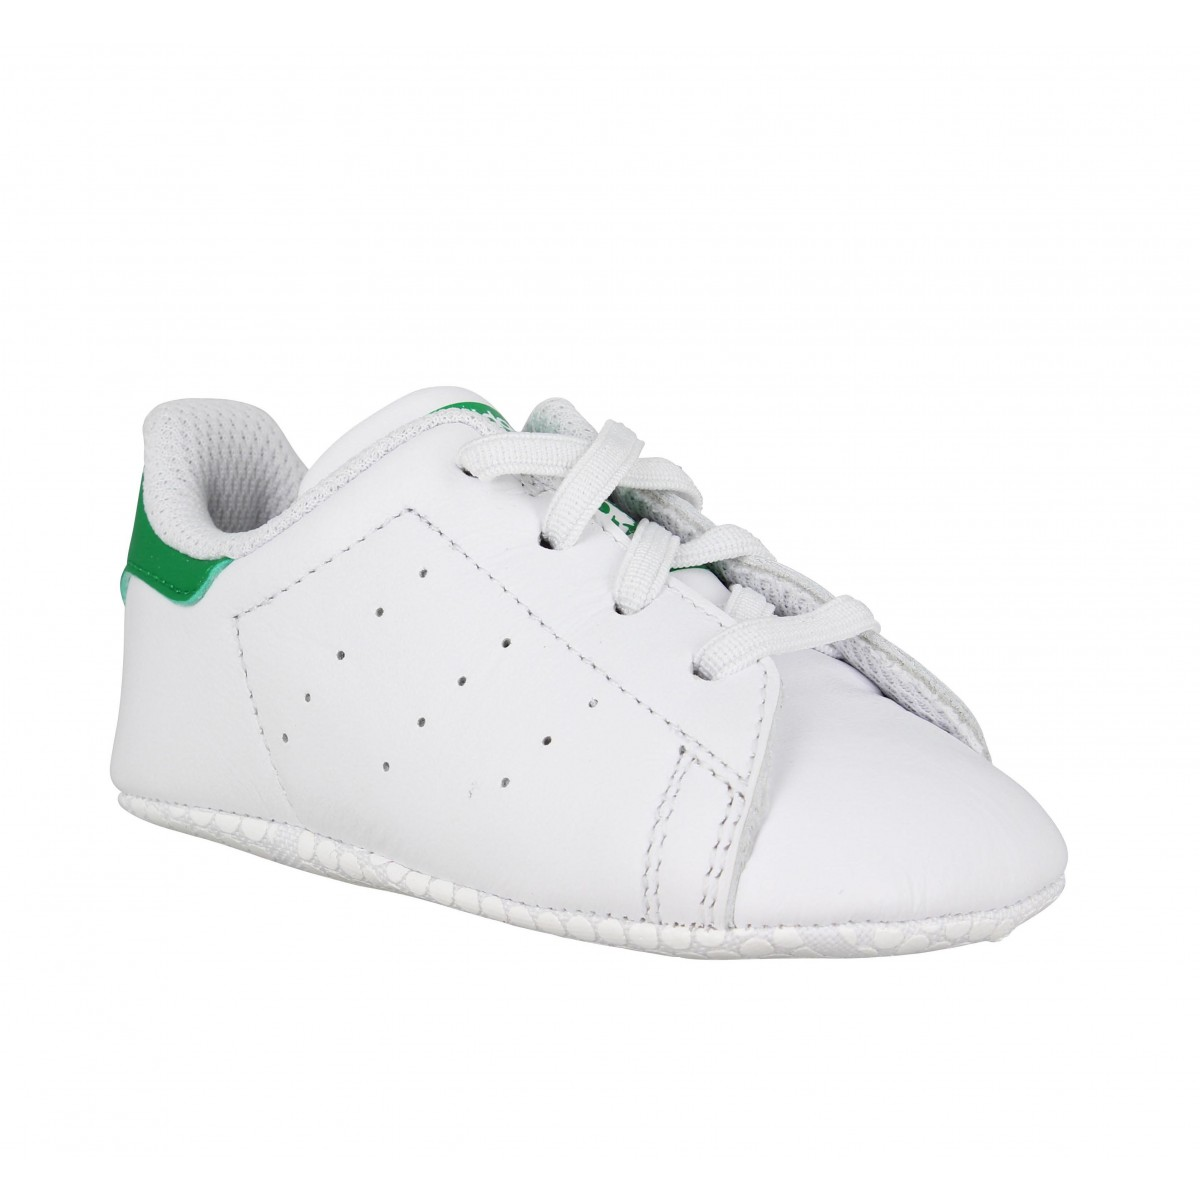 Baskets ADIDAS Stan Smith Bebe cuir Enfant Blanc Vert